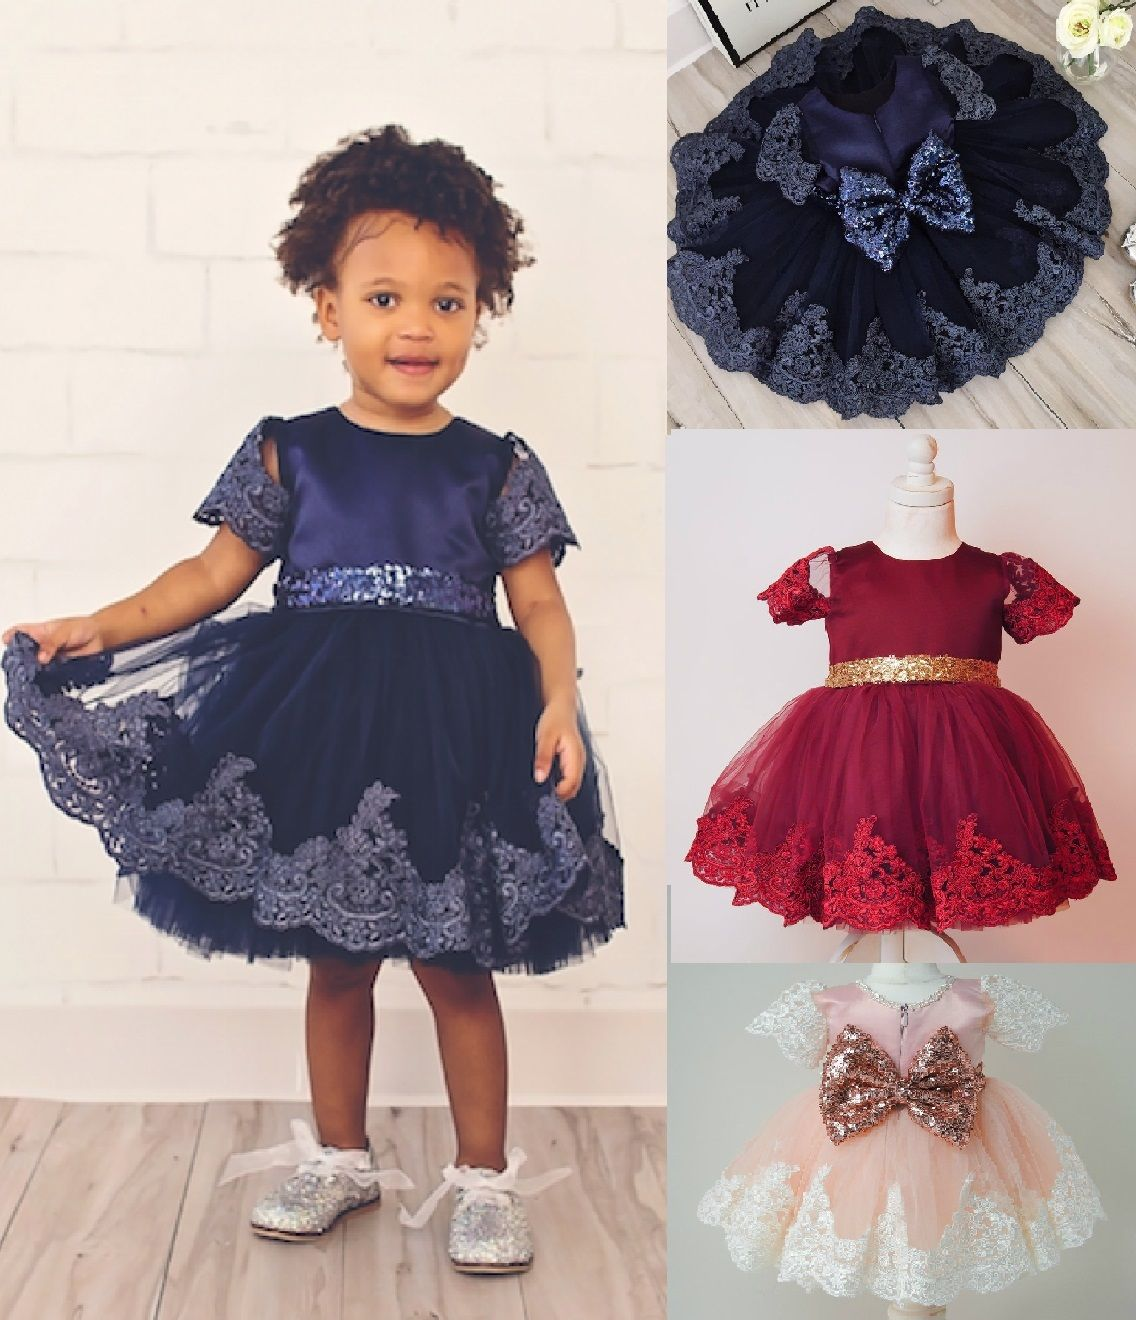 2017 New Baby Girls Princess Dress Clothes Short Sleeve Lace Bow Ball Gown Tutu Party Dress Toddler Kids Fancy Dress 0-7Y<br><br>Aliexpress